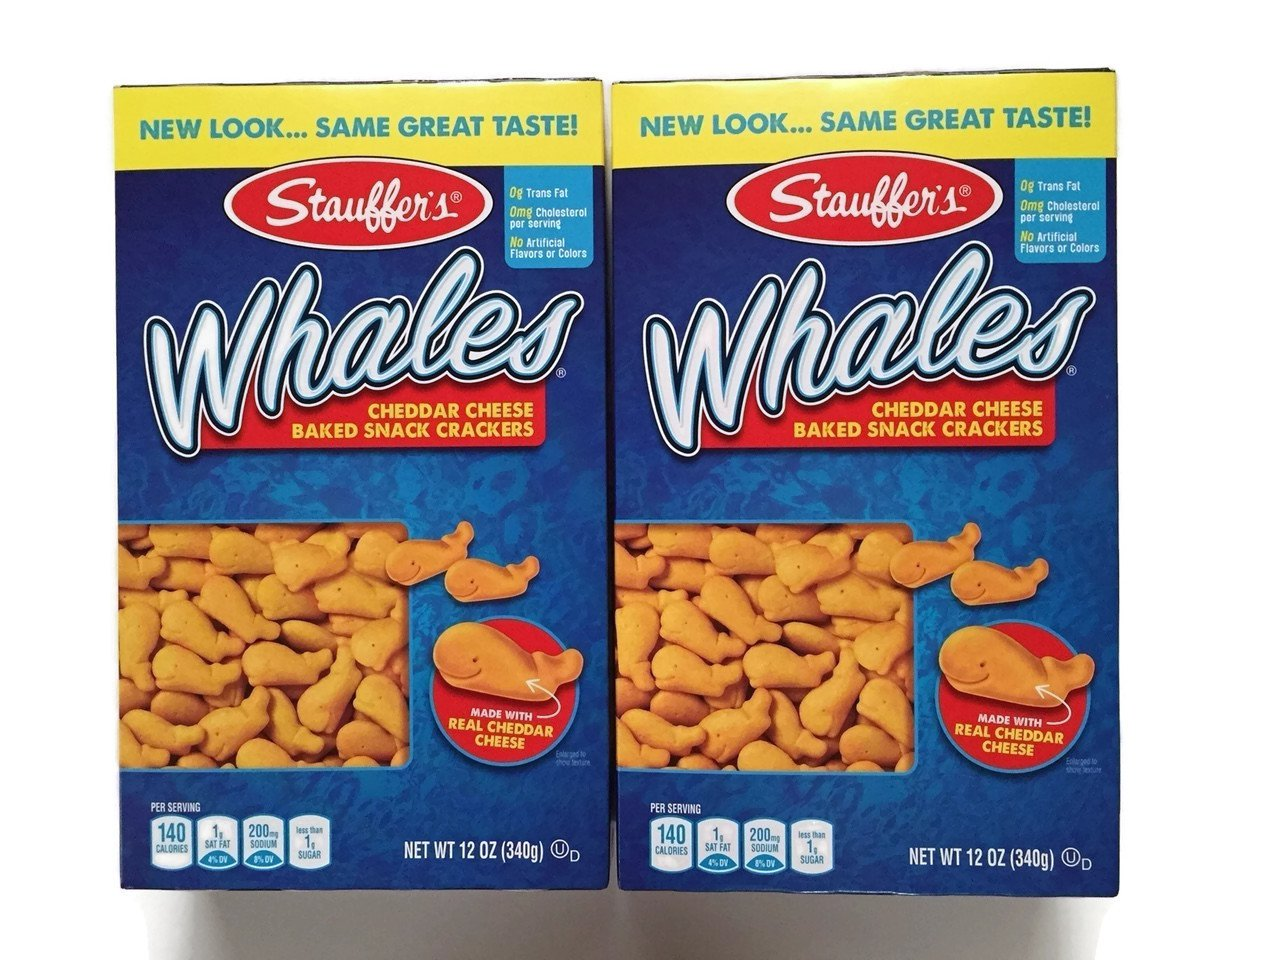 Stauffer's Whales, Cheddar Cheese Baked Snack Crackers, 12 Oz. Boxes (Set of 2) Stauffer' s Whales